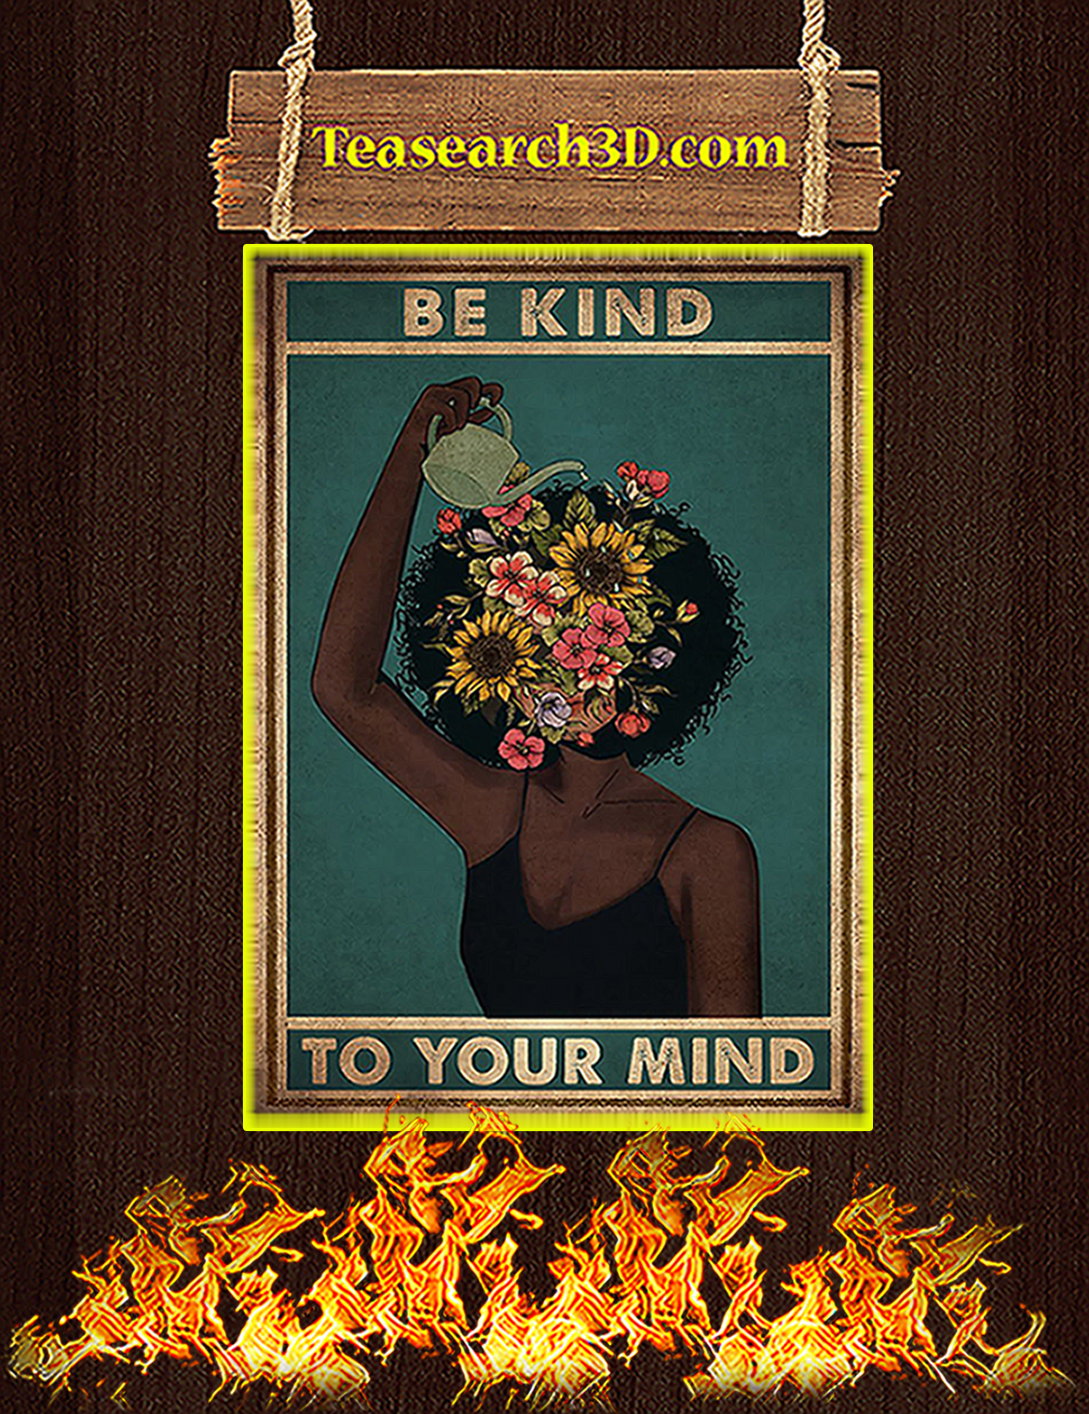 Black girl mental be kind to your mind mental poster A2